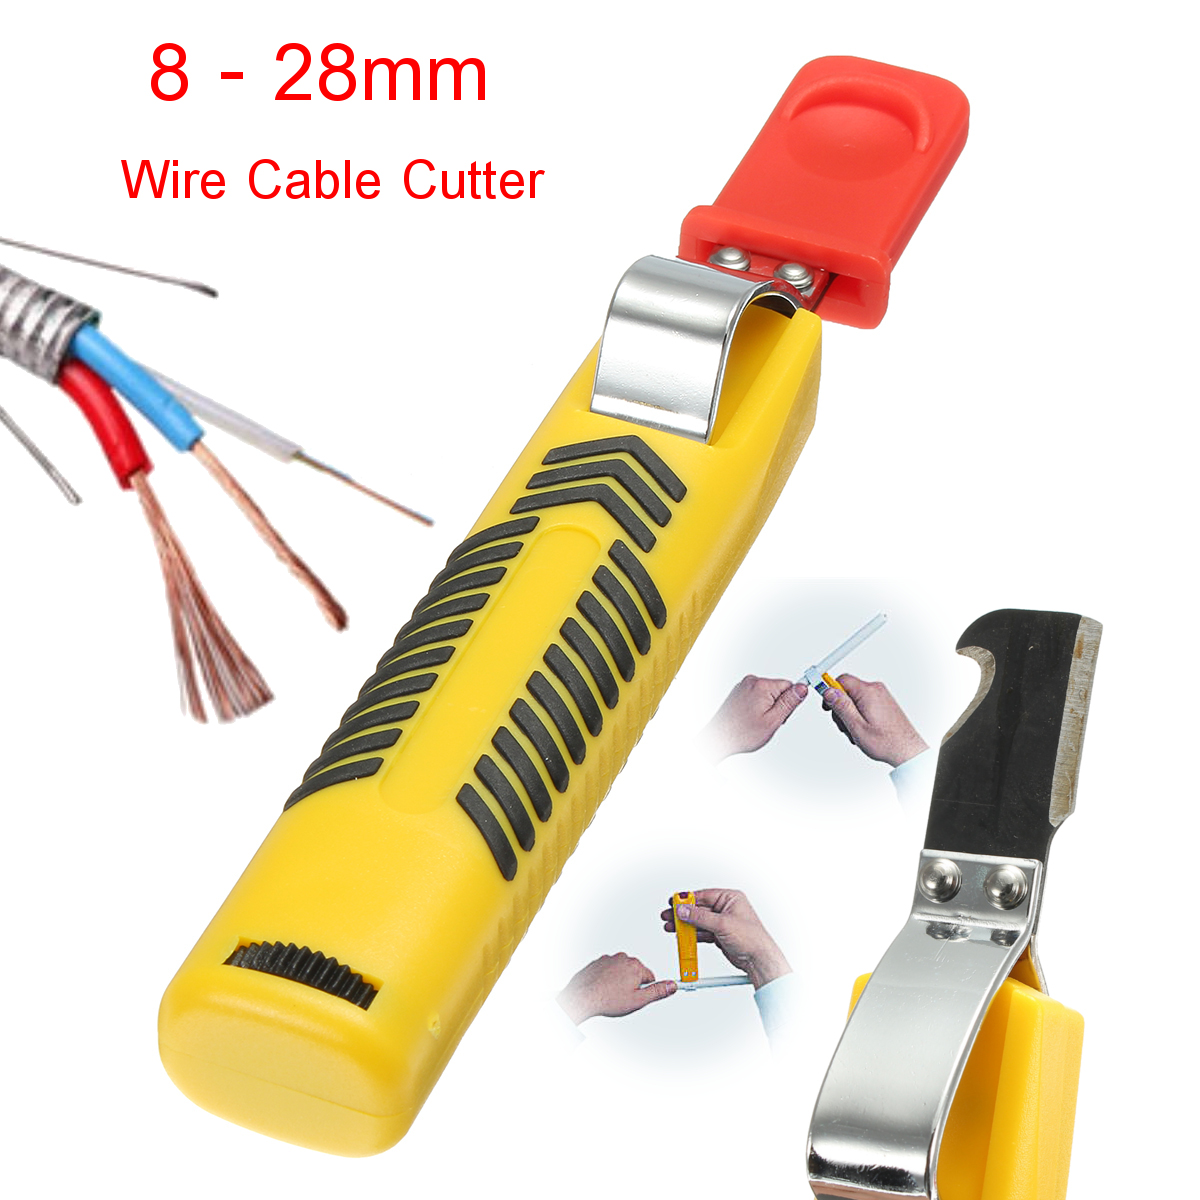 Secura Cable Knife Stripping Tool 8-28mm Cable Wire Stripper Stripping Cutter Hand Tool